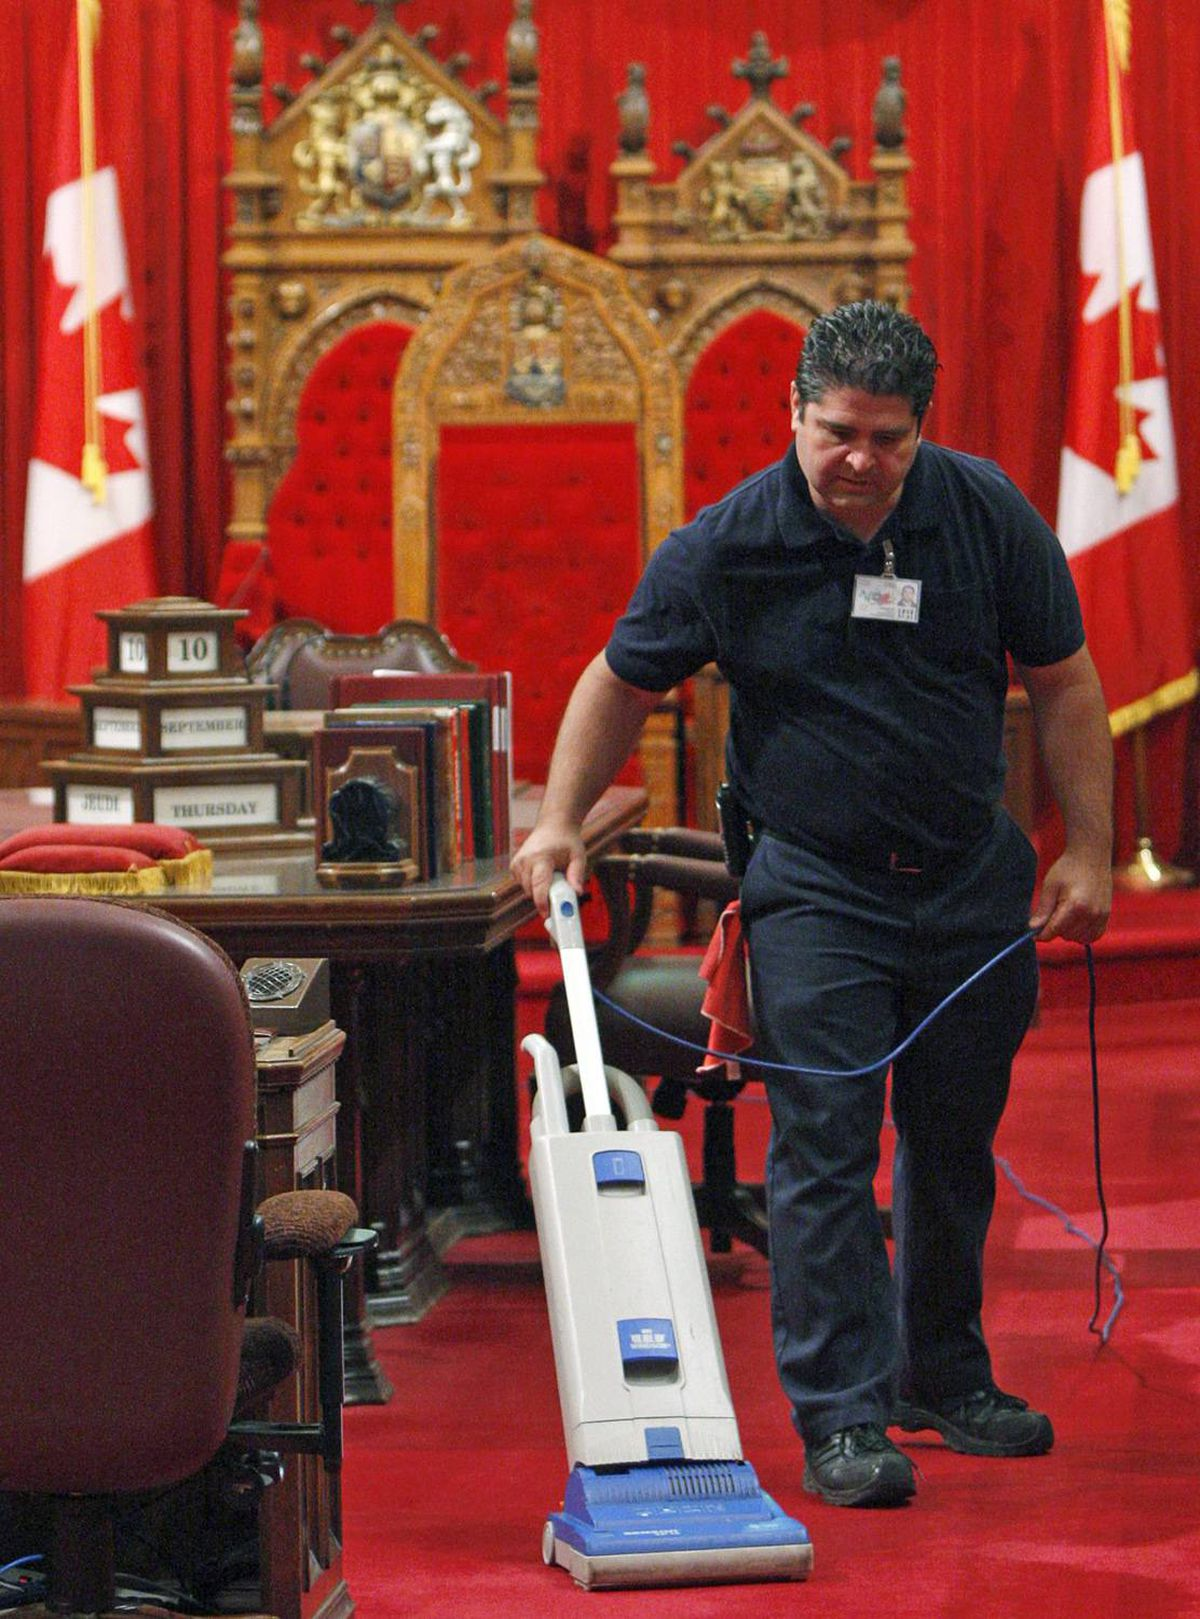 The Senate carpet gets a once-over on Sept. 10, 2009.